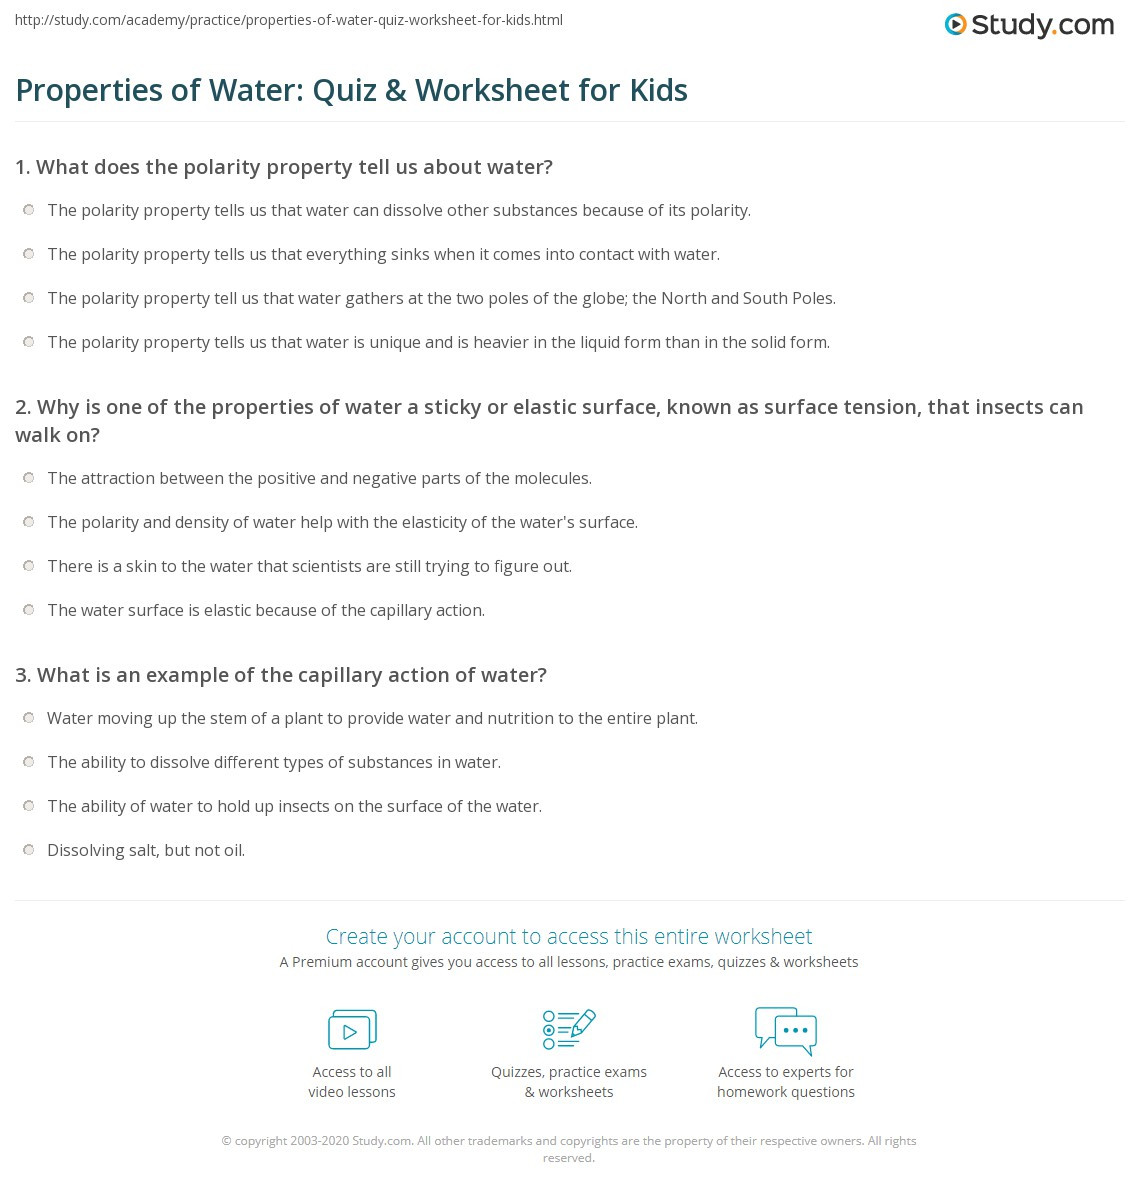 Properties of Water Quiz & Worksheet for Kids